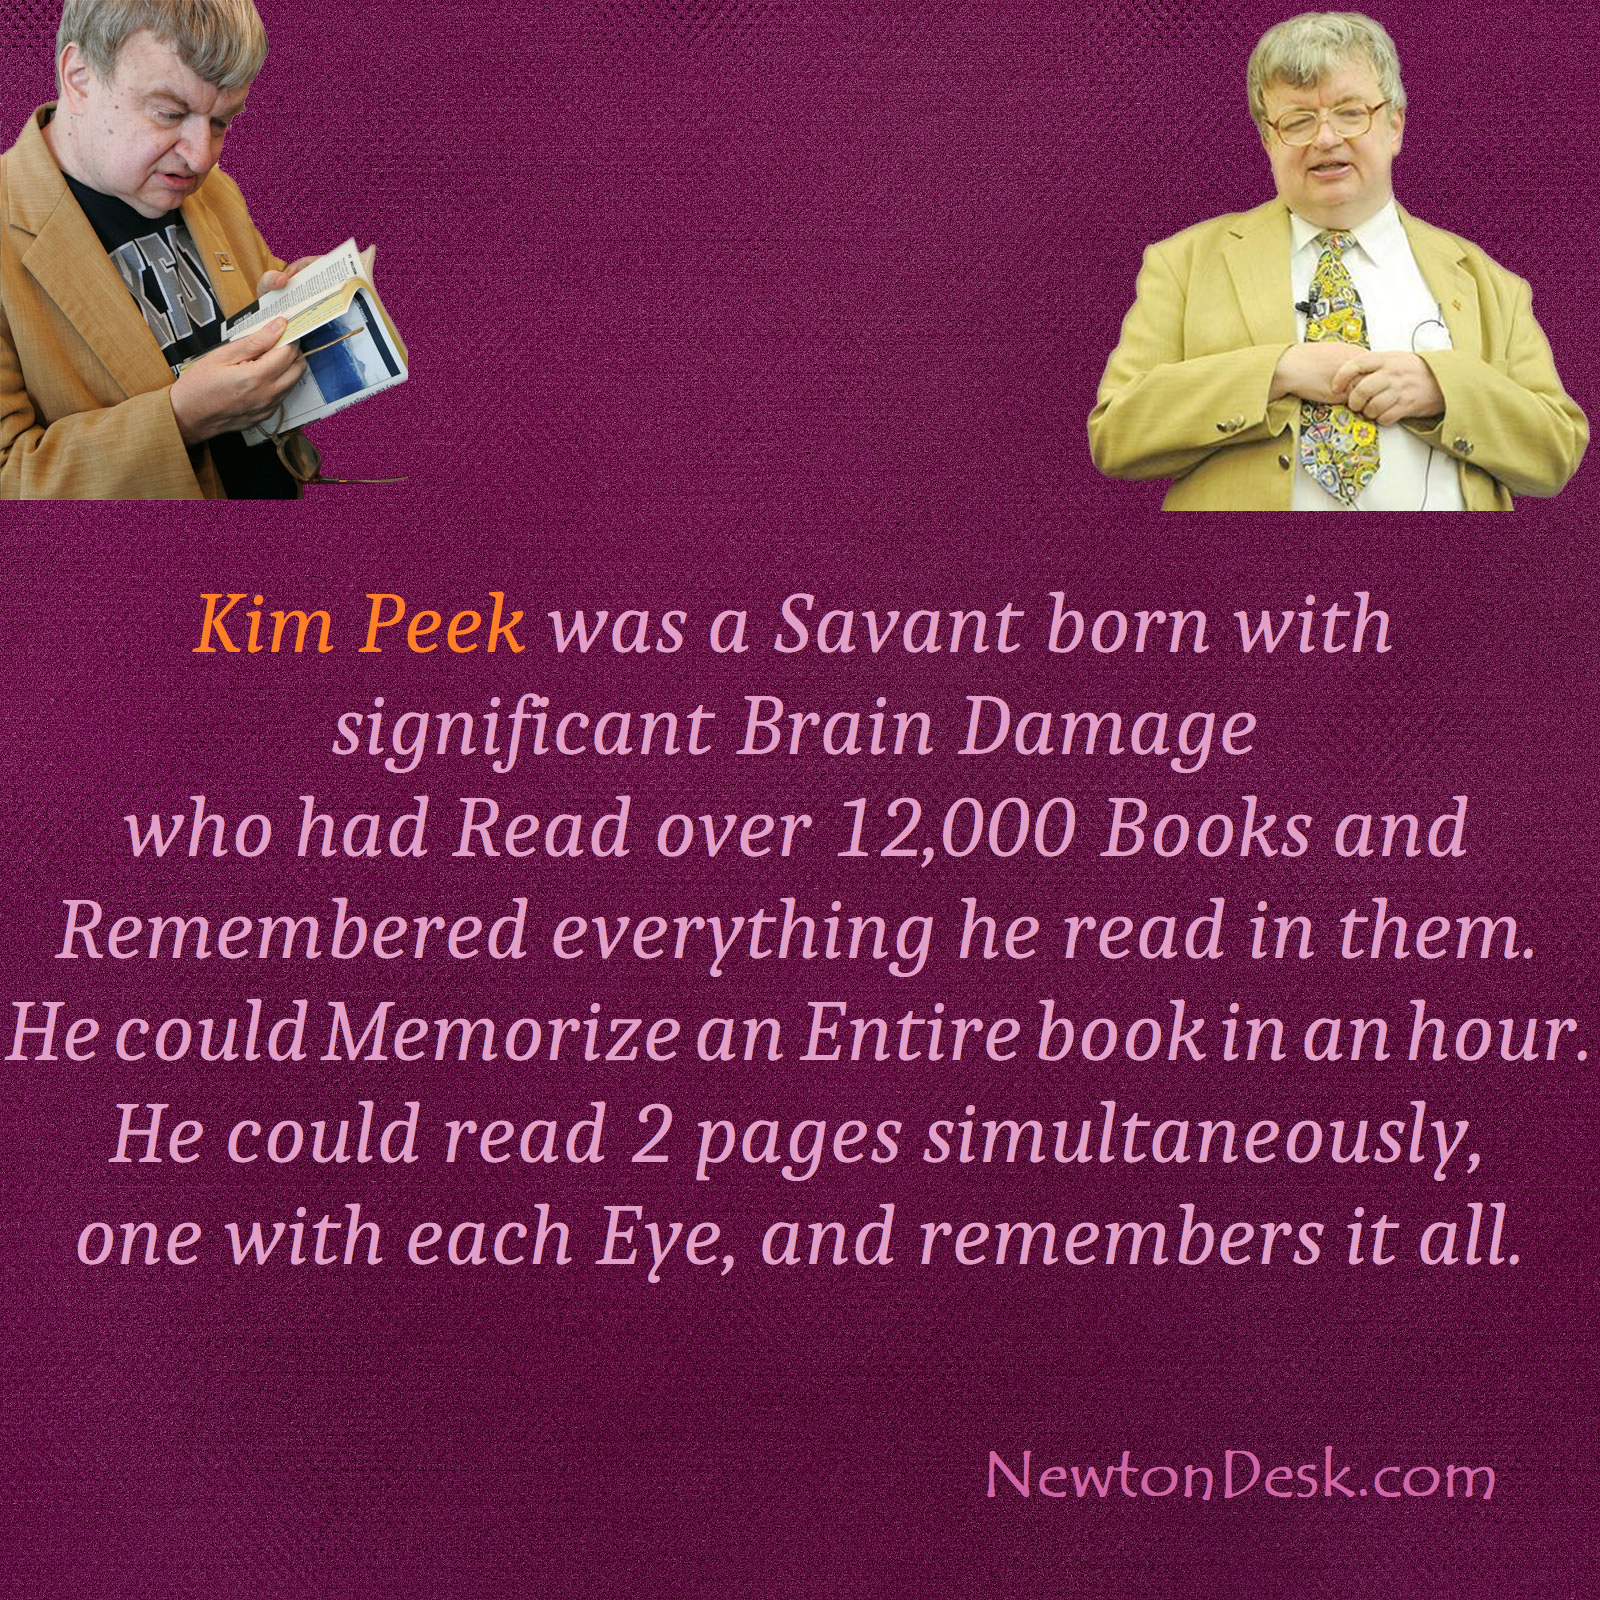 Kim Peek The Real Rain Man Savant Syndrome Human Facts